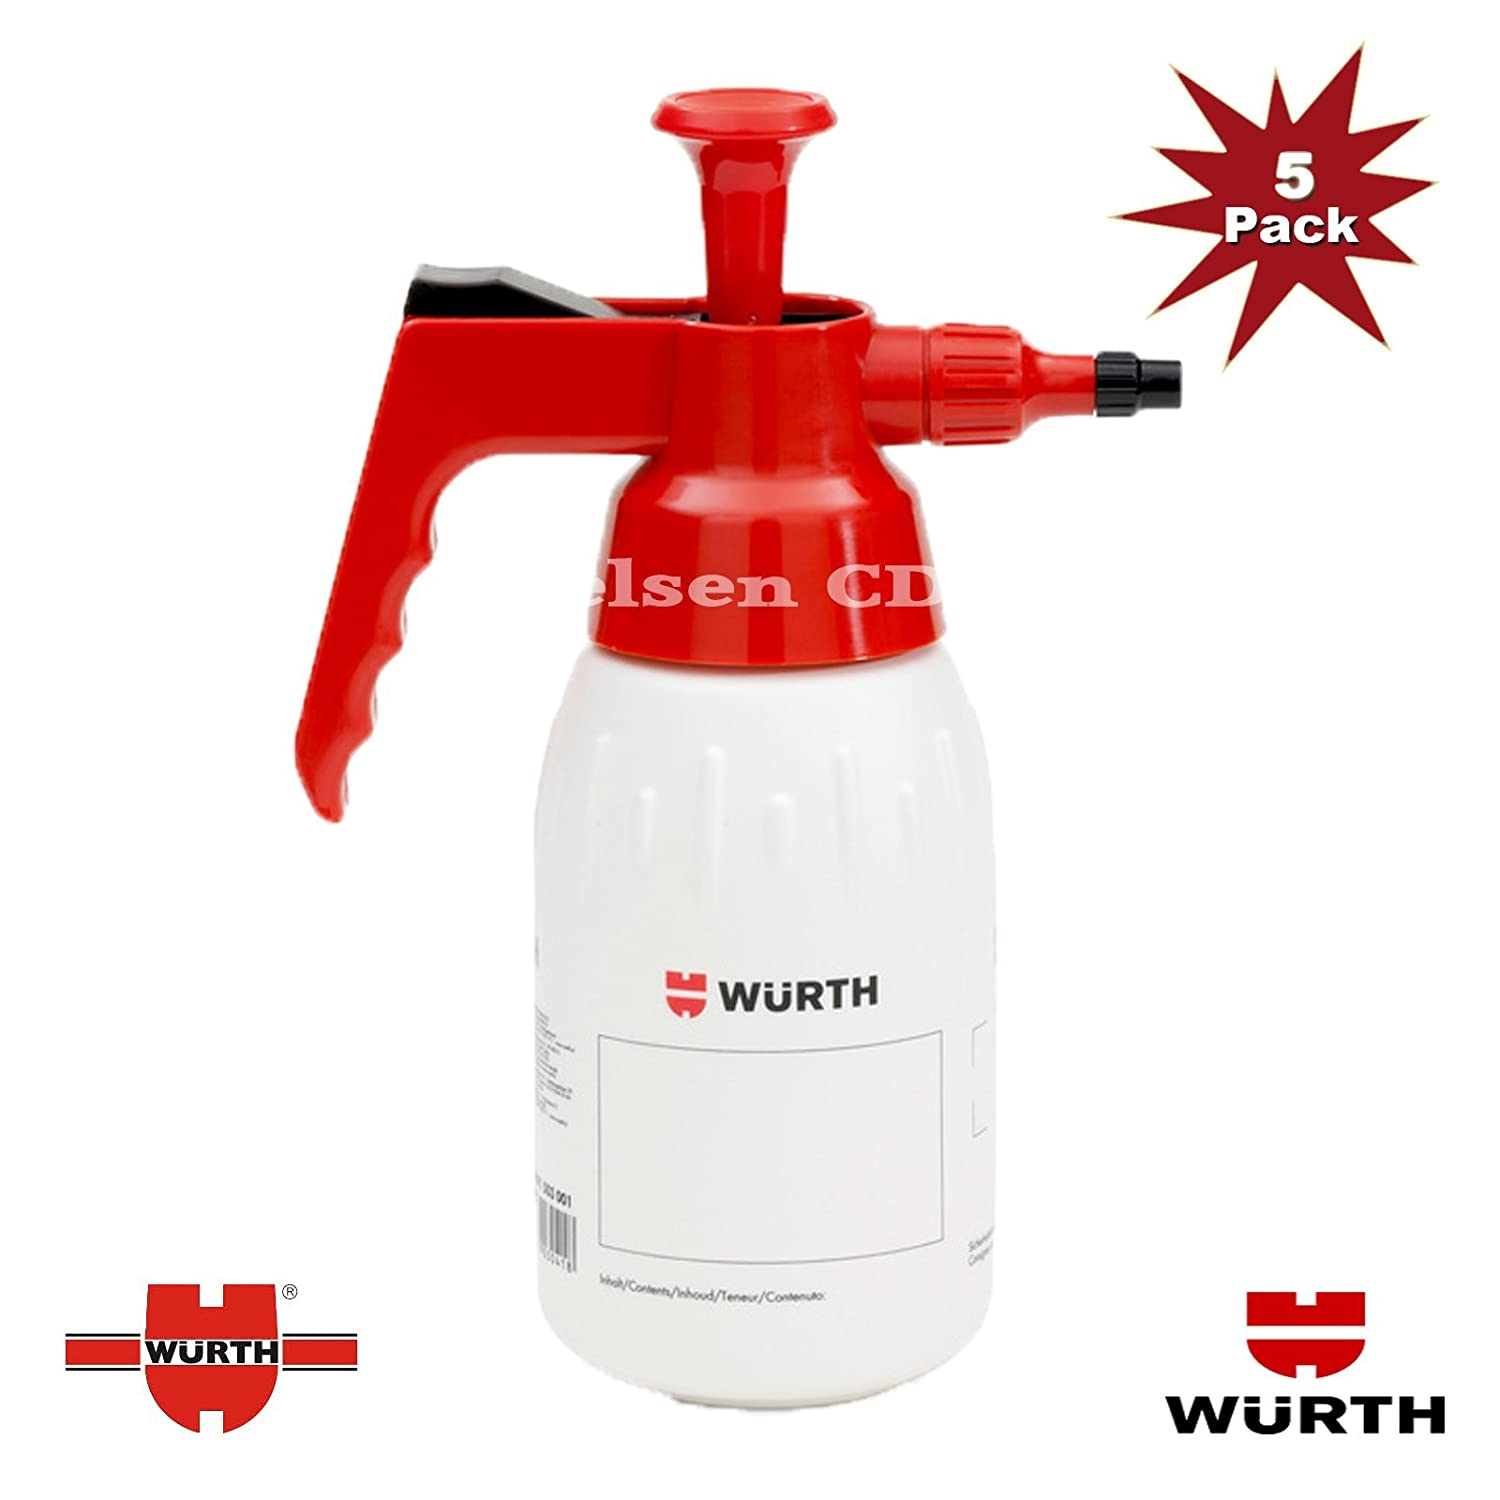 Wurth Pump Dispenser For Brake Cleaner 1000ml - 5pk